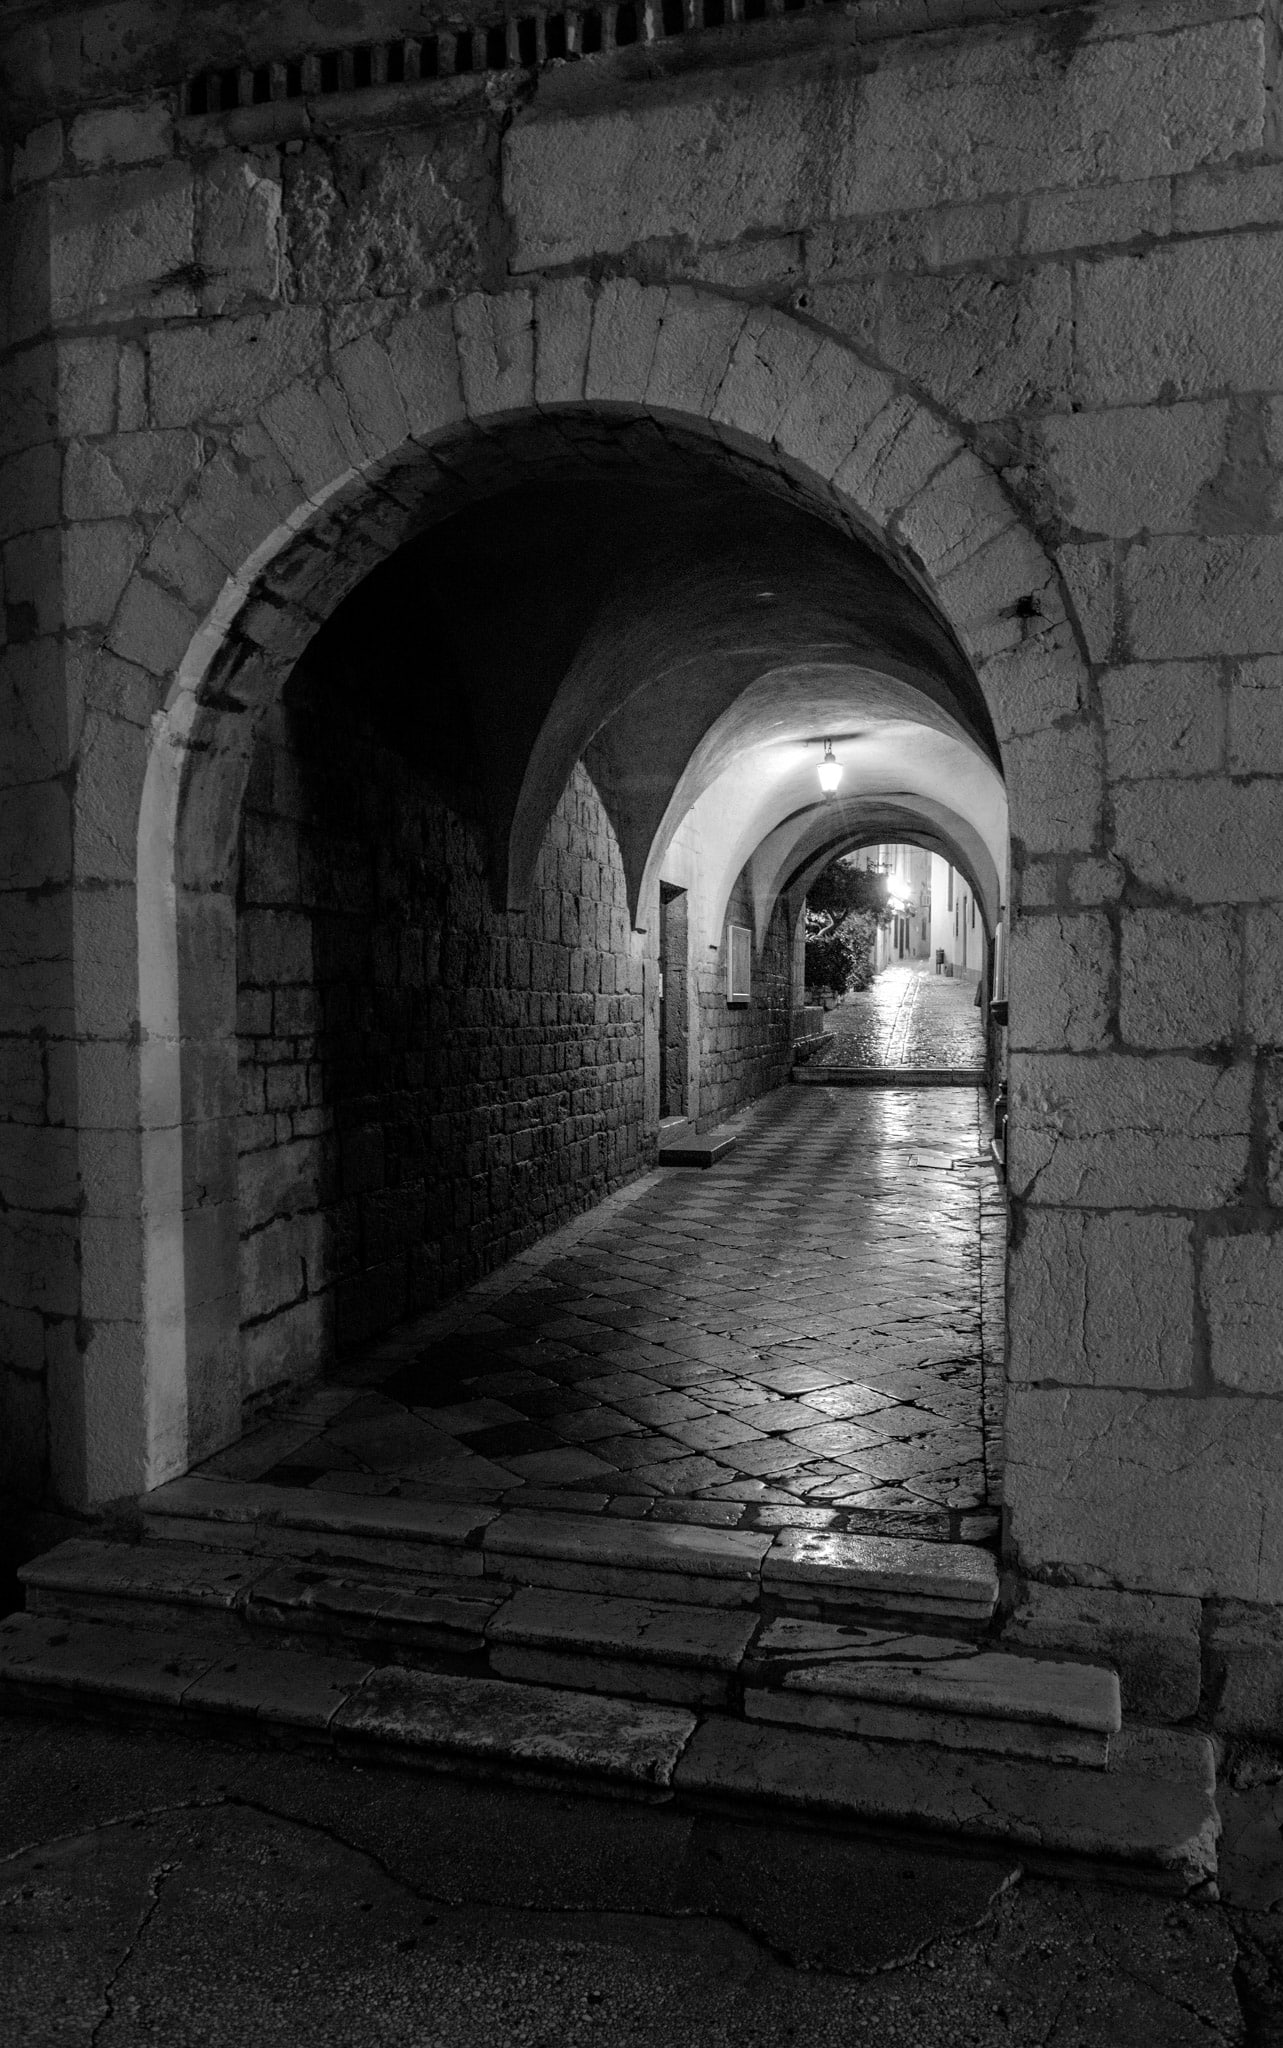 A nighttime view through a vaulted tunnel to an old cobbled street in the heart of Old Town Krk on the island of Krk in Croatia.